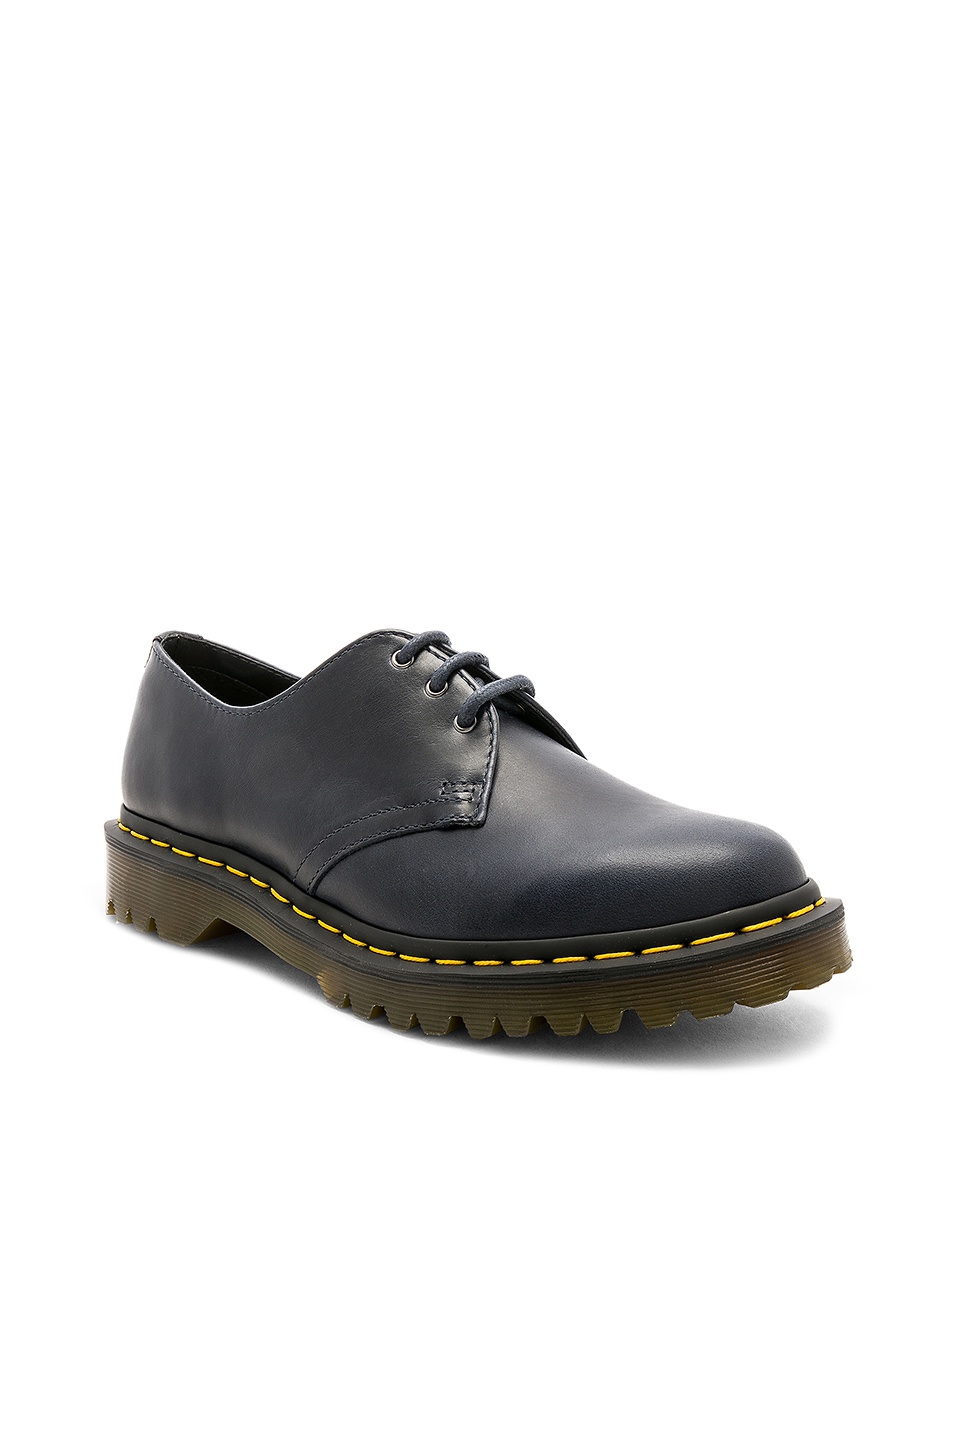 Dr. Martens Orleans 1461 3 Eye Shoe in Navy